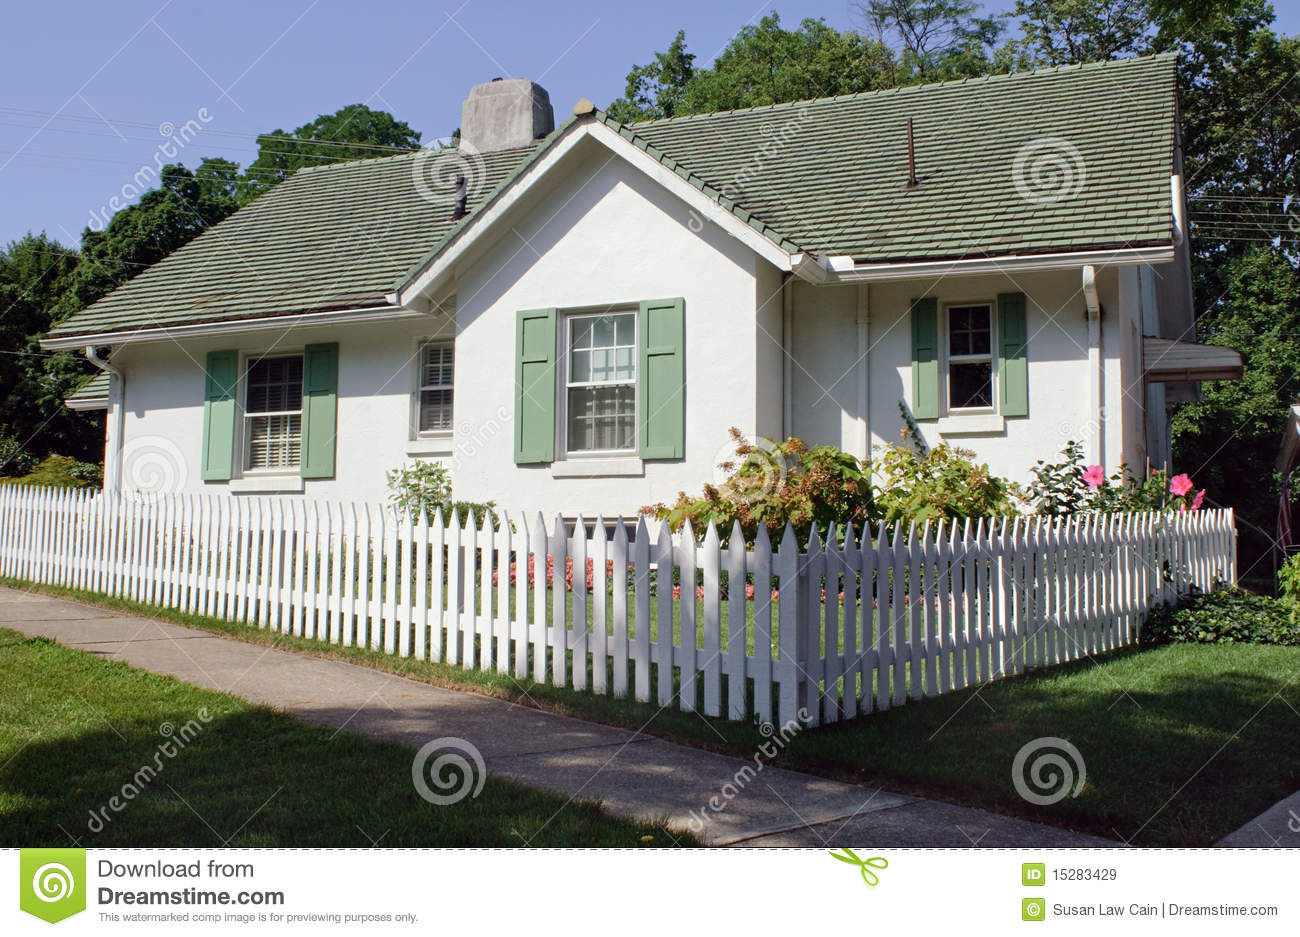 Cottage With Picket Fence Royalty Free Stock Images